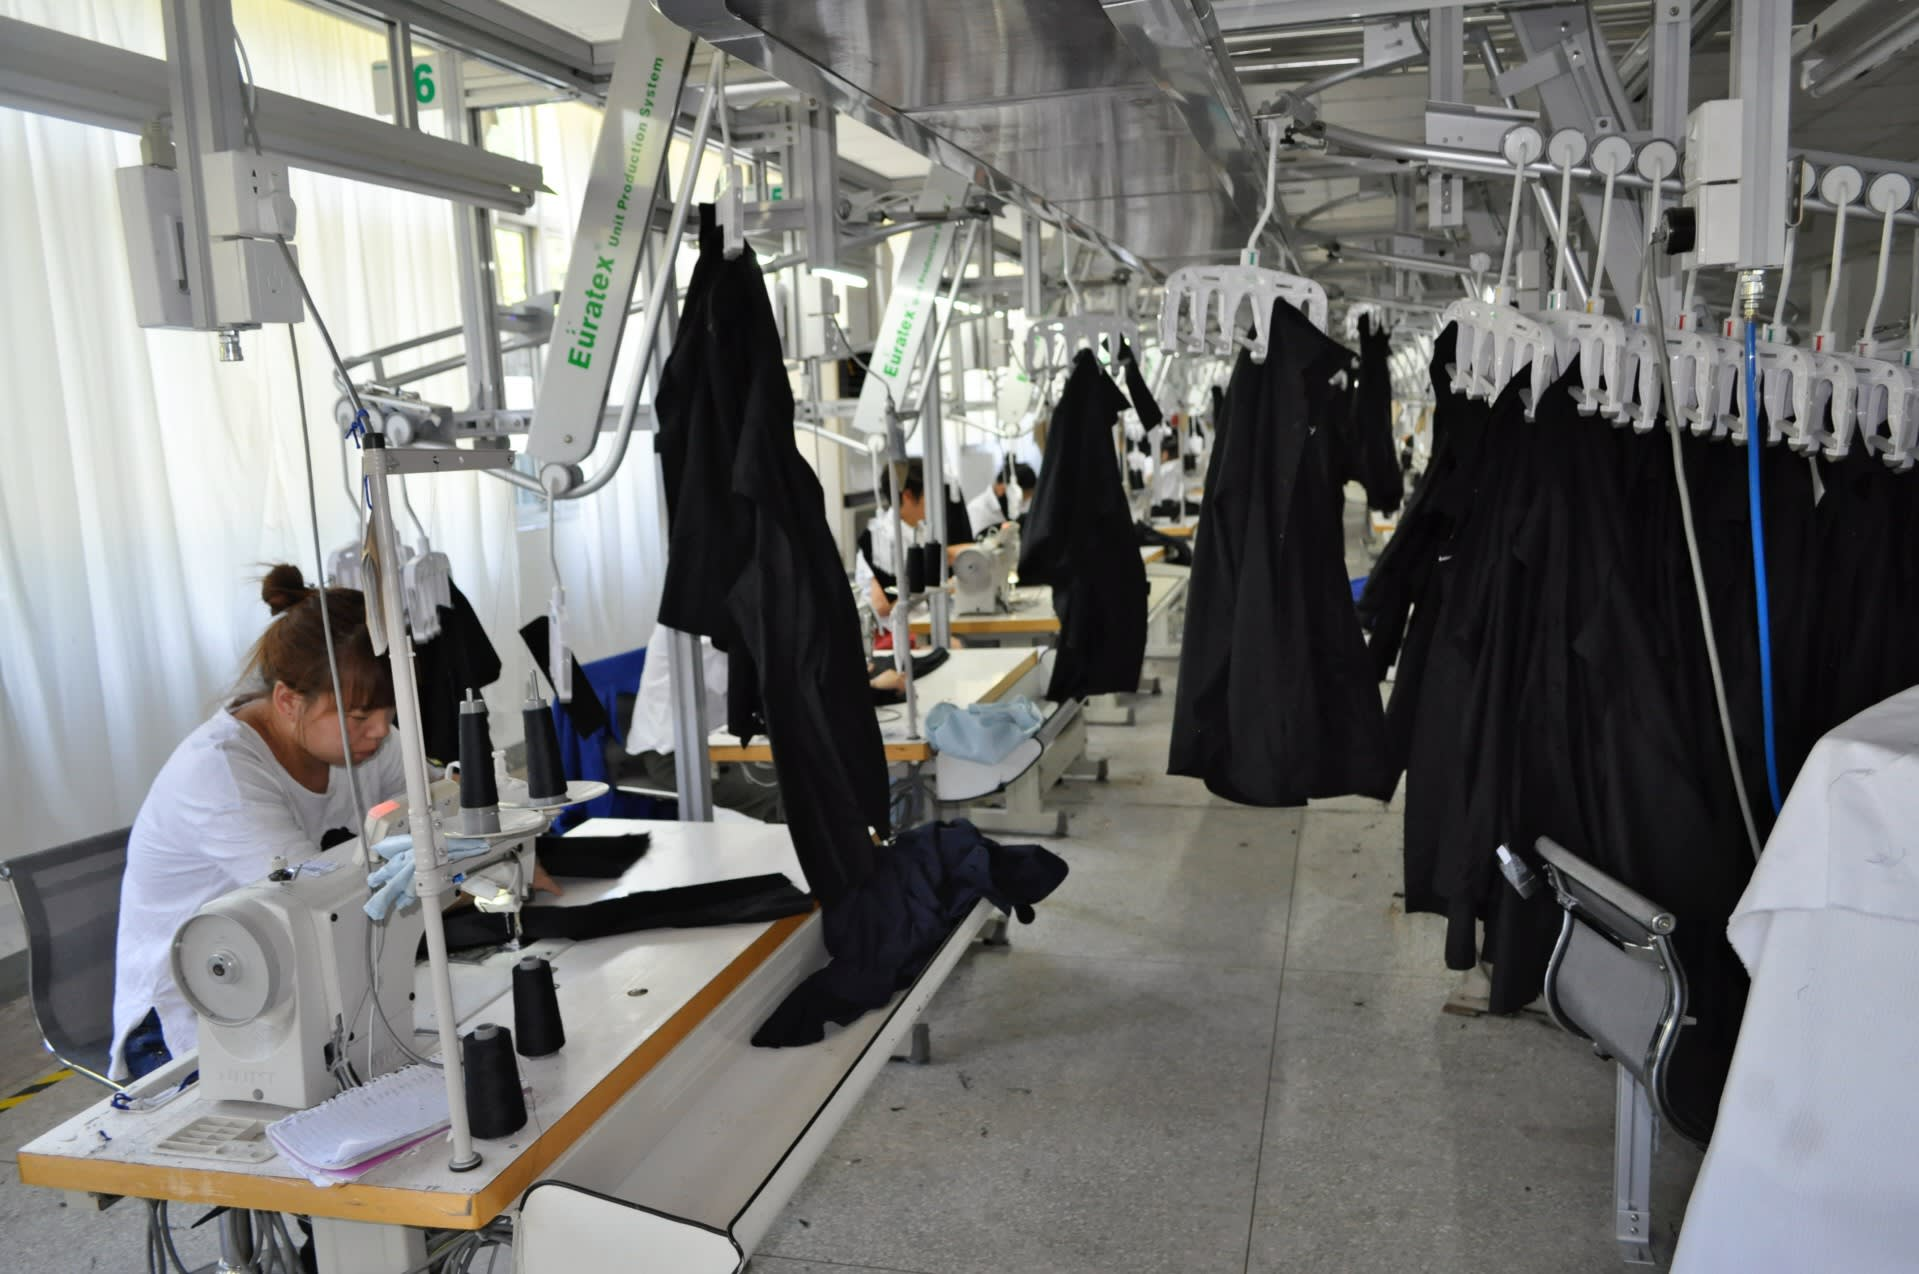 clothing manufacturers overseas looking for clothing manufacturer